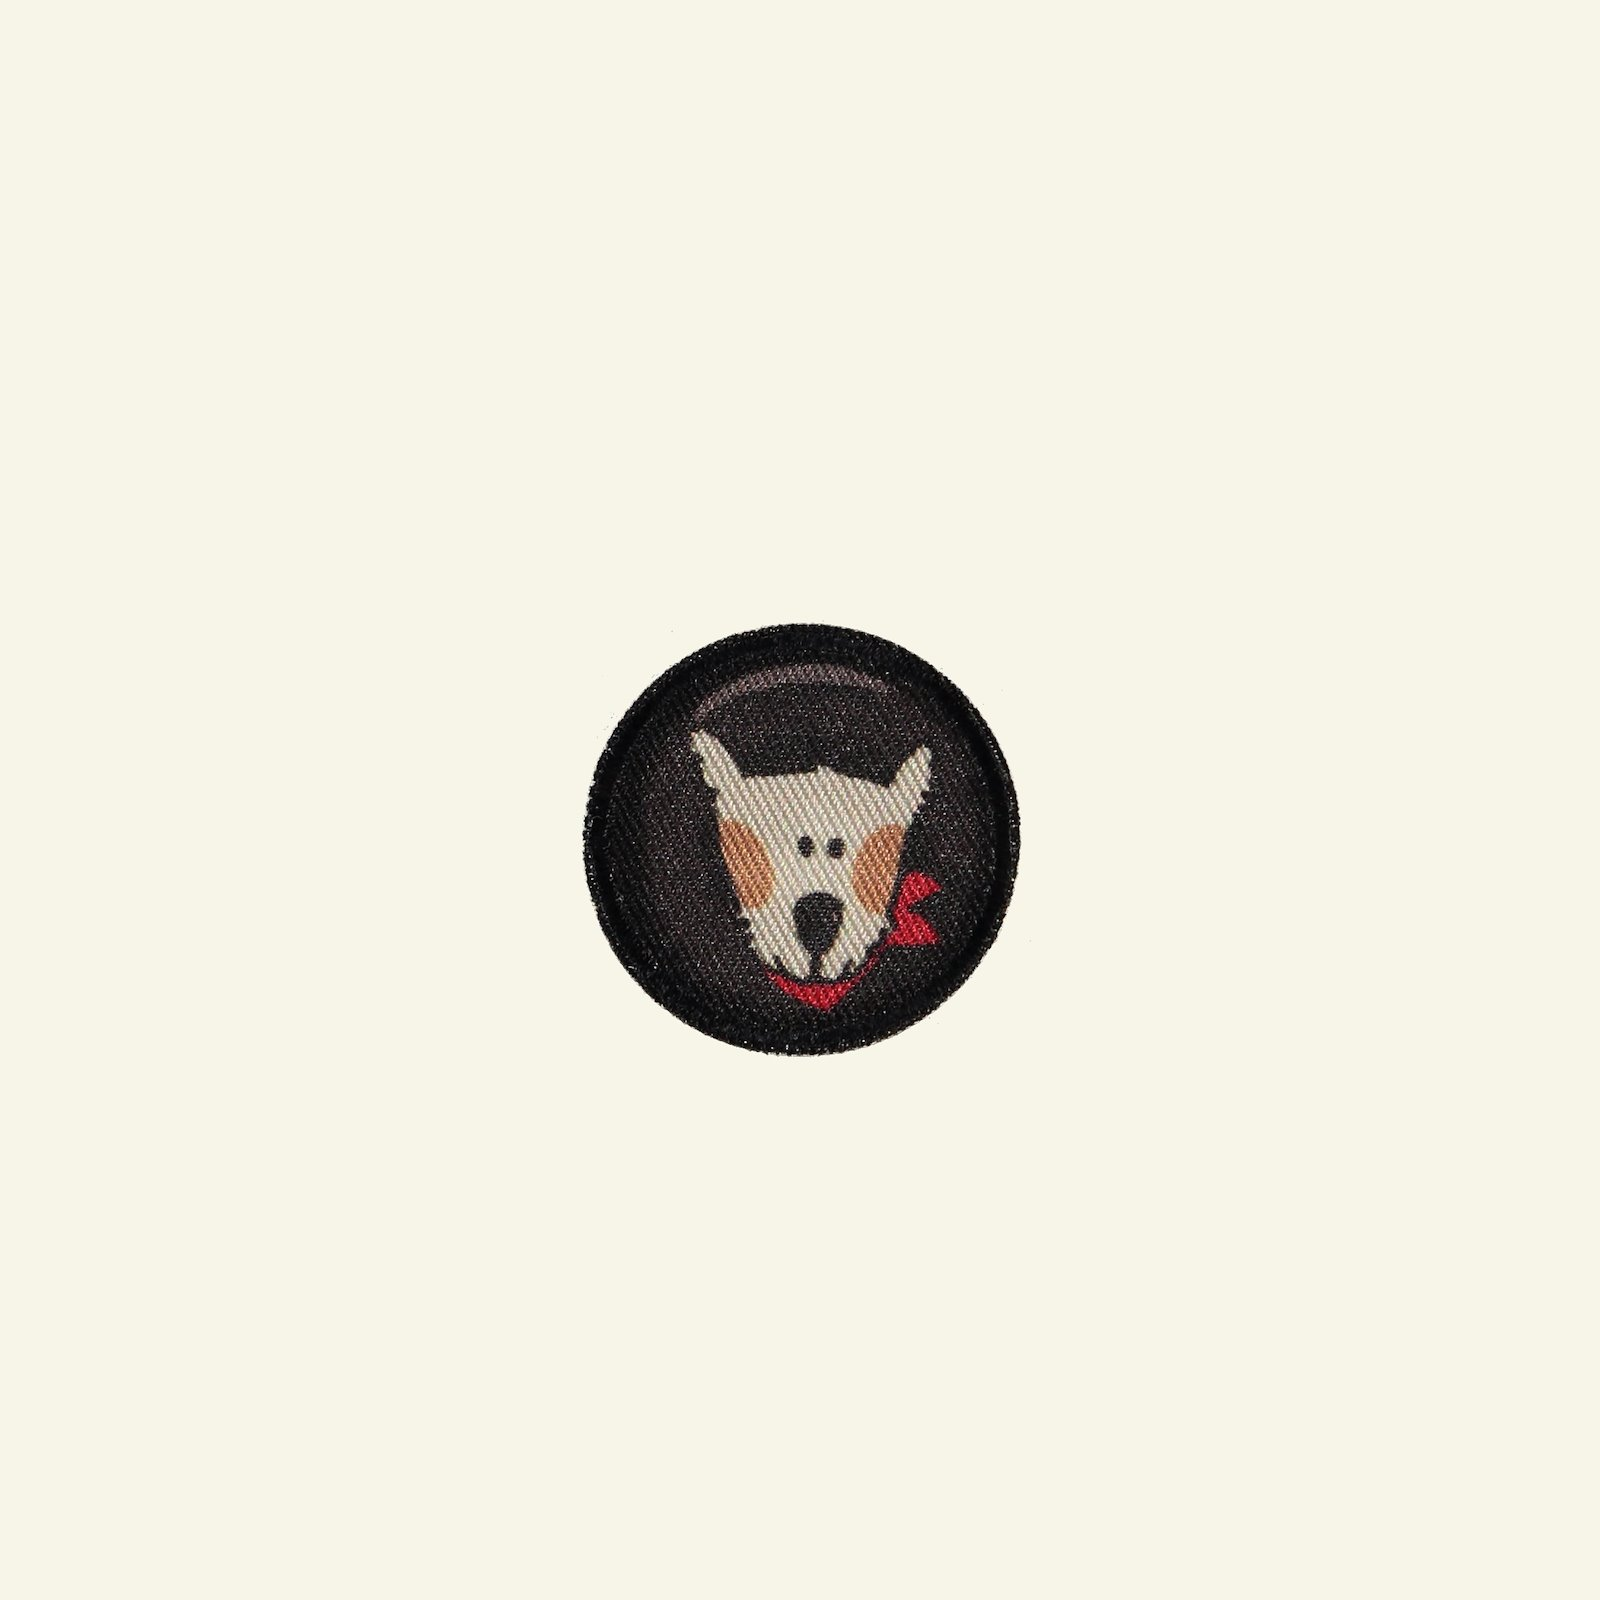 Patch dog 37x37 1pc 26483_pack